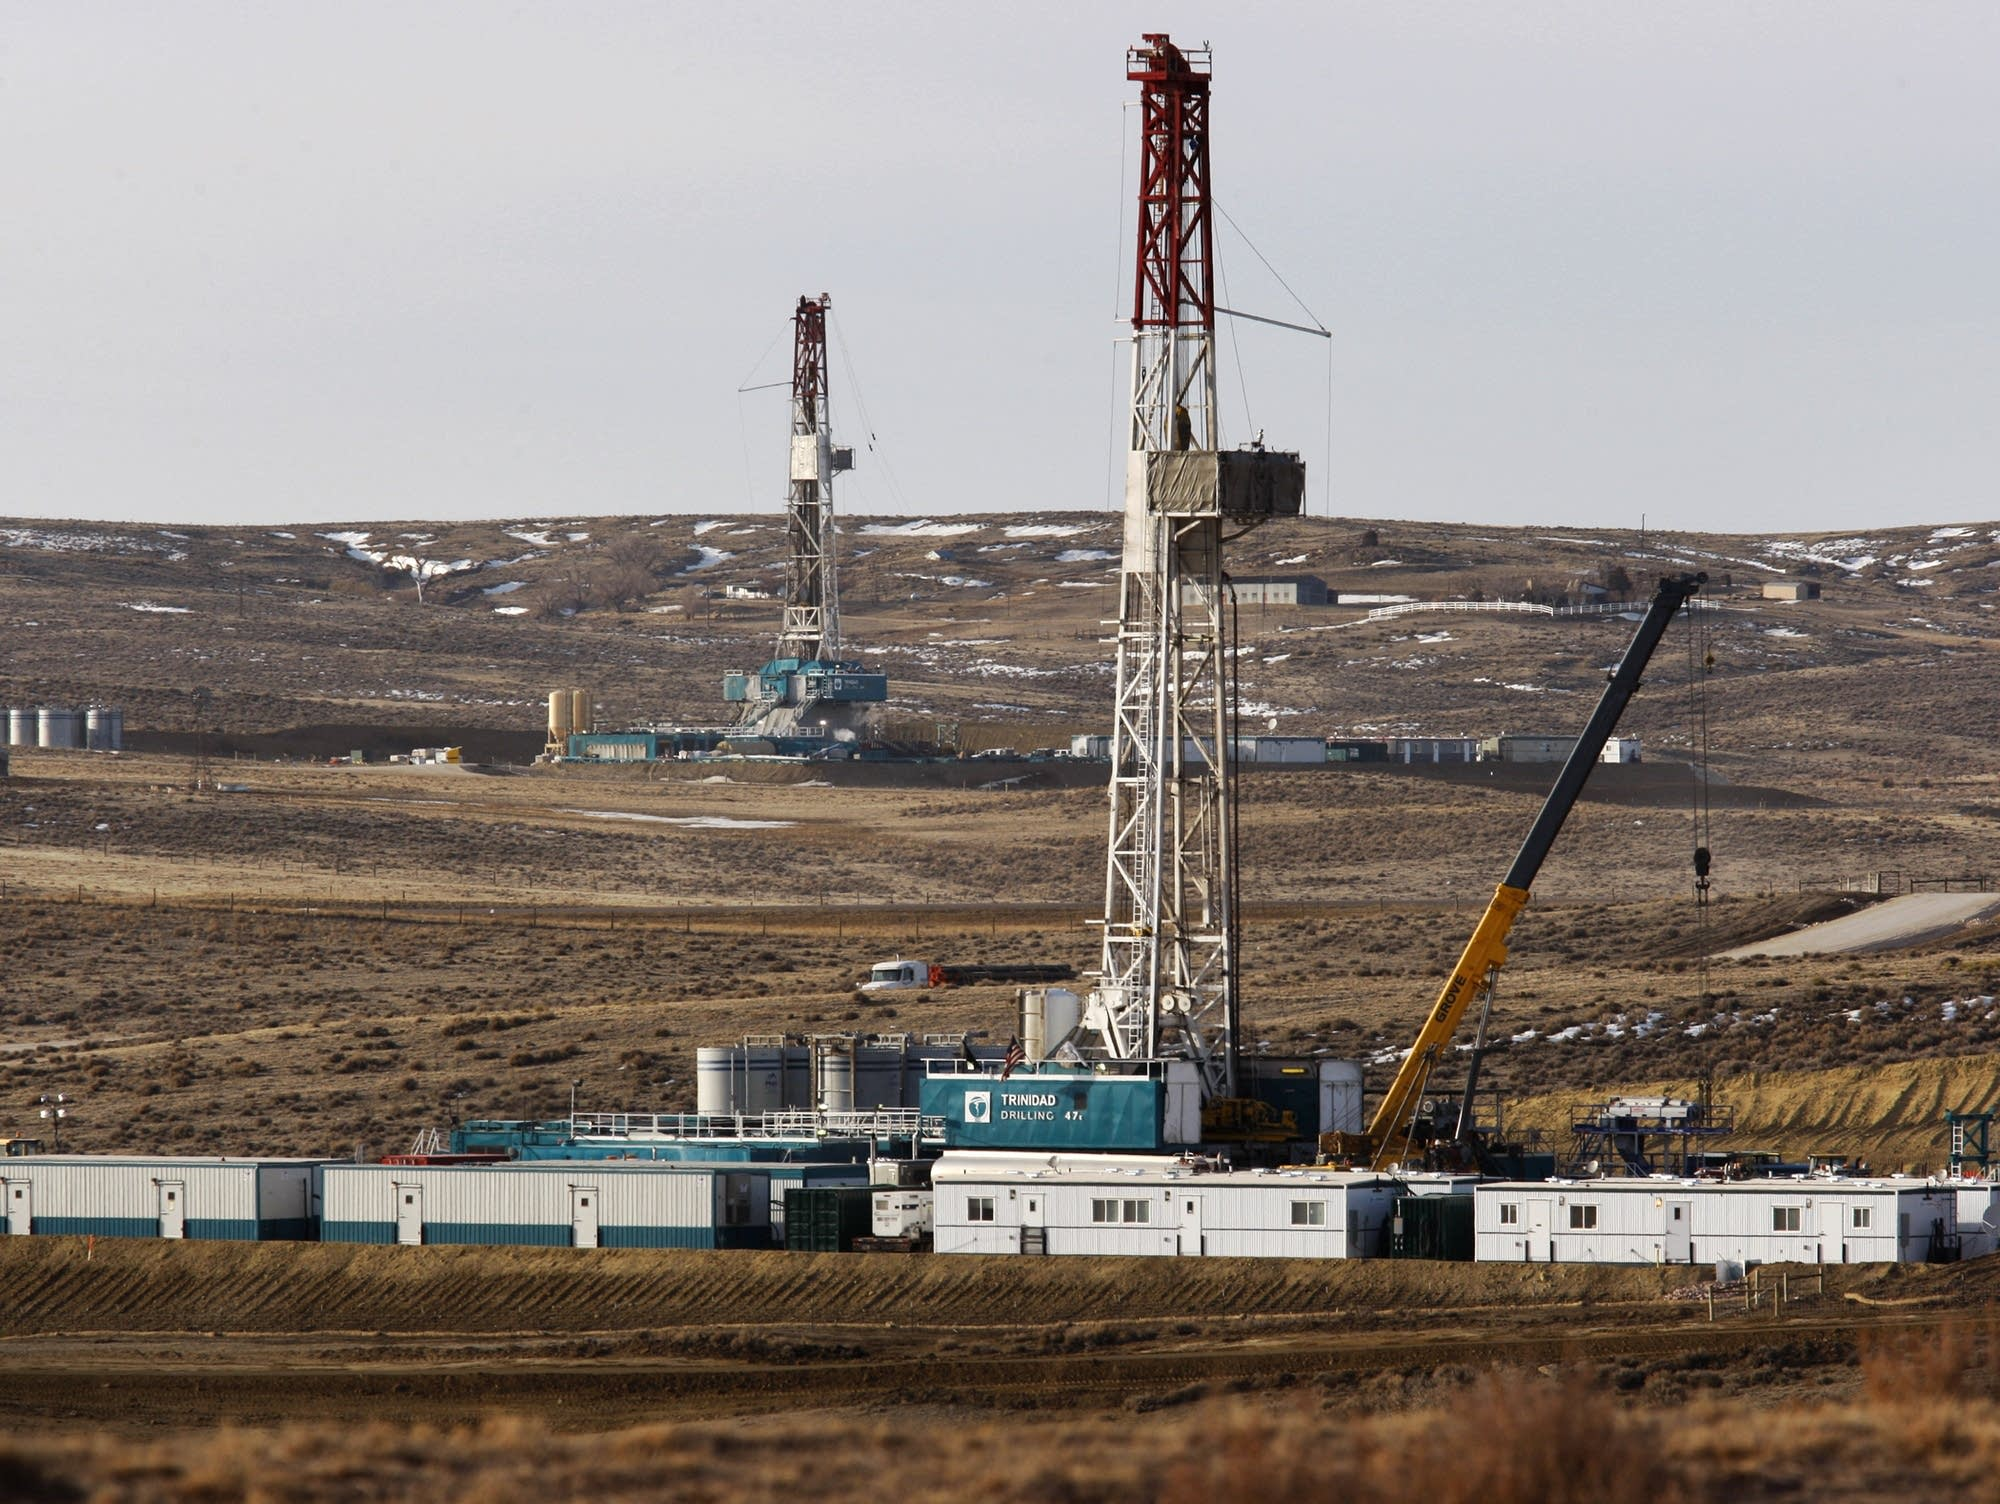 Trinidad Drilling rigs in Wyoming